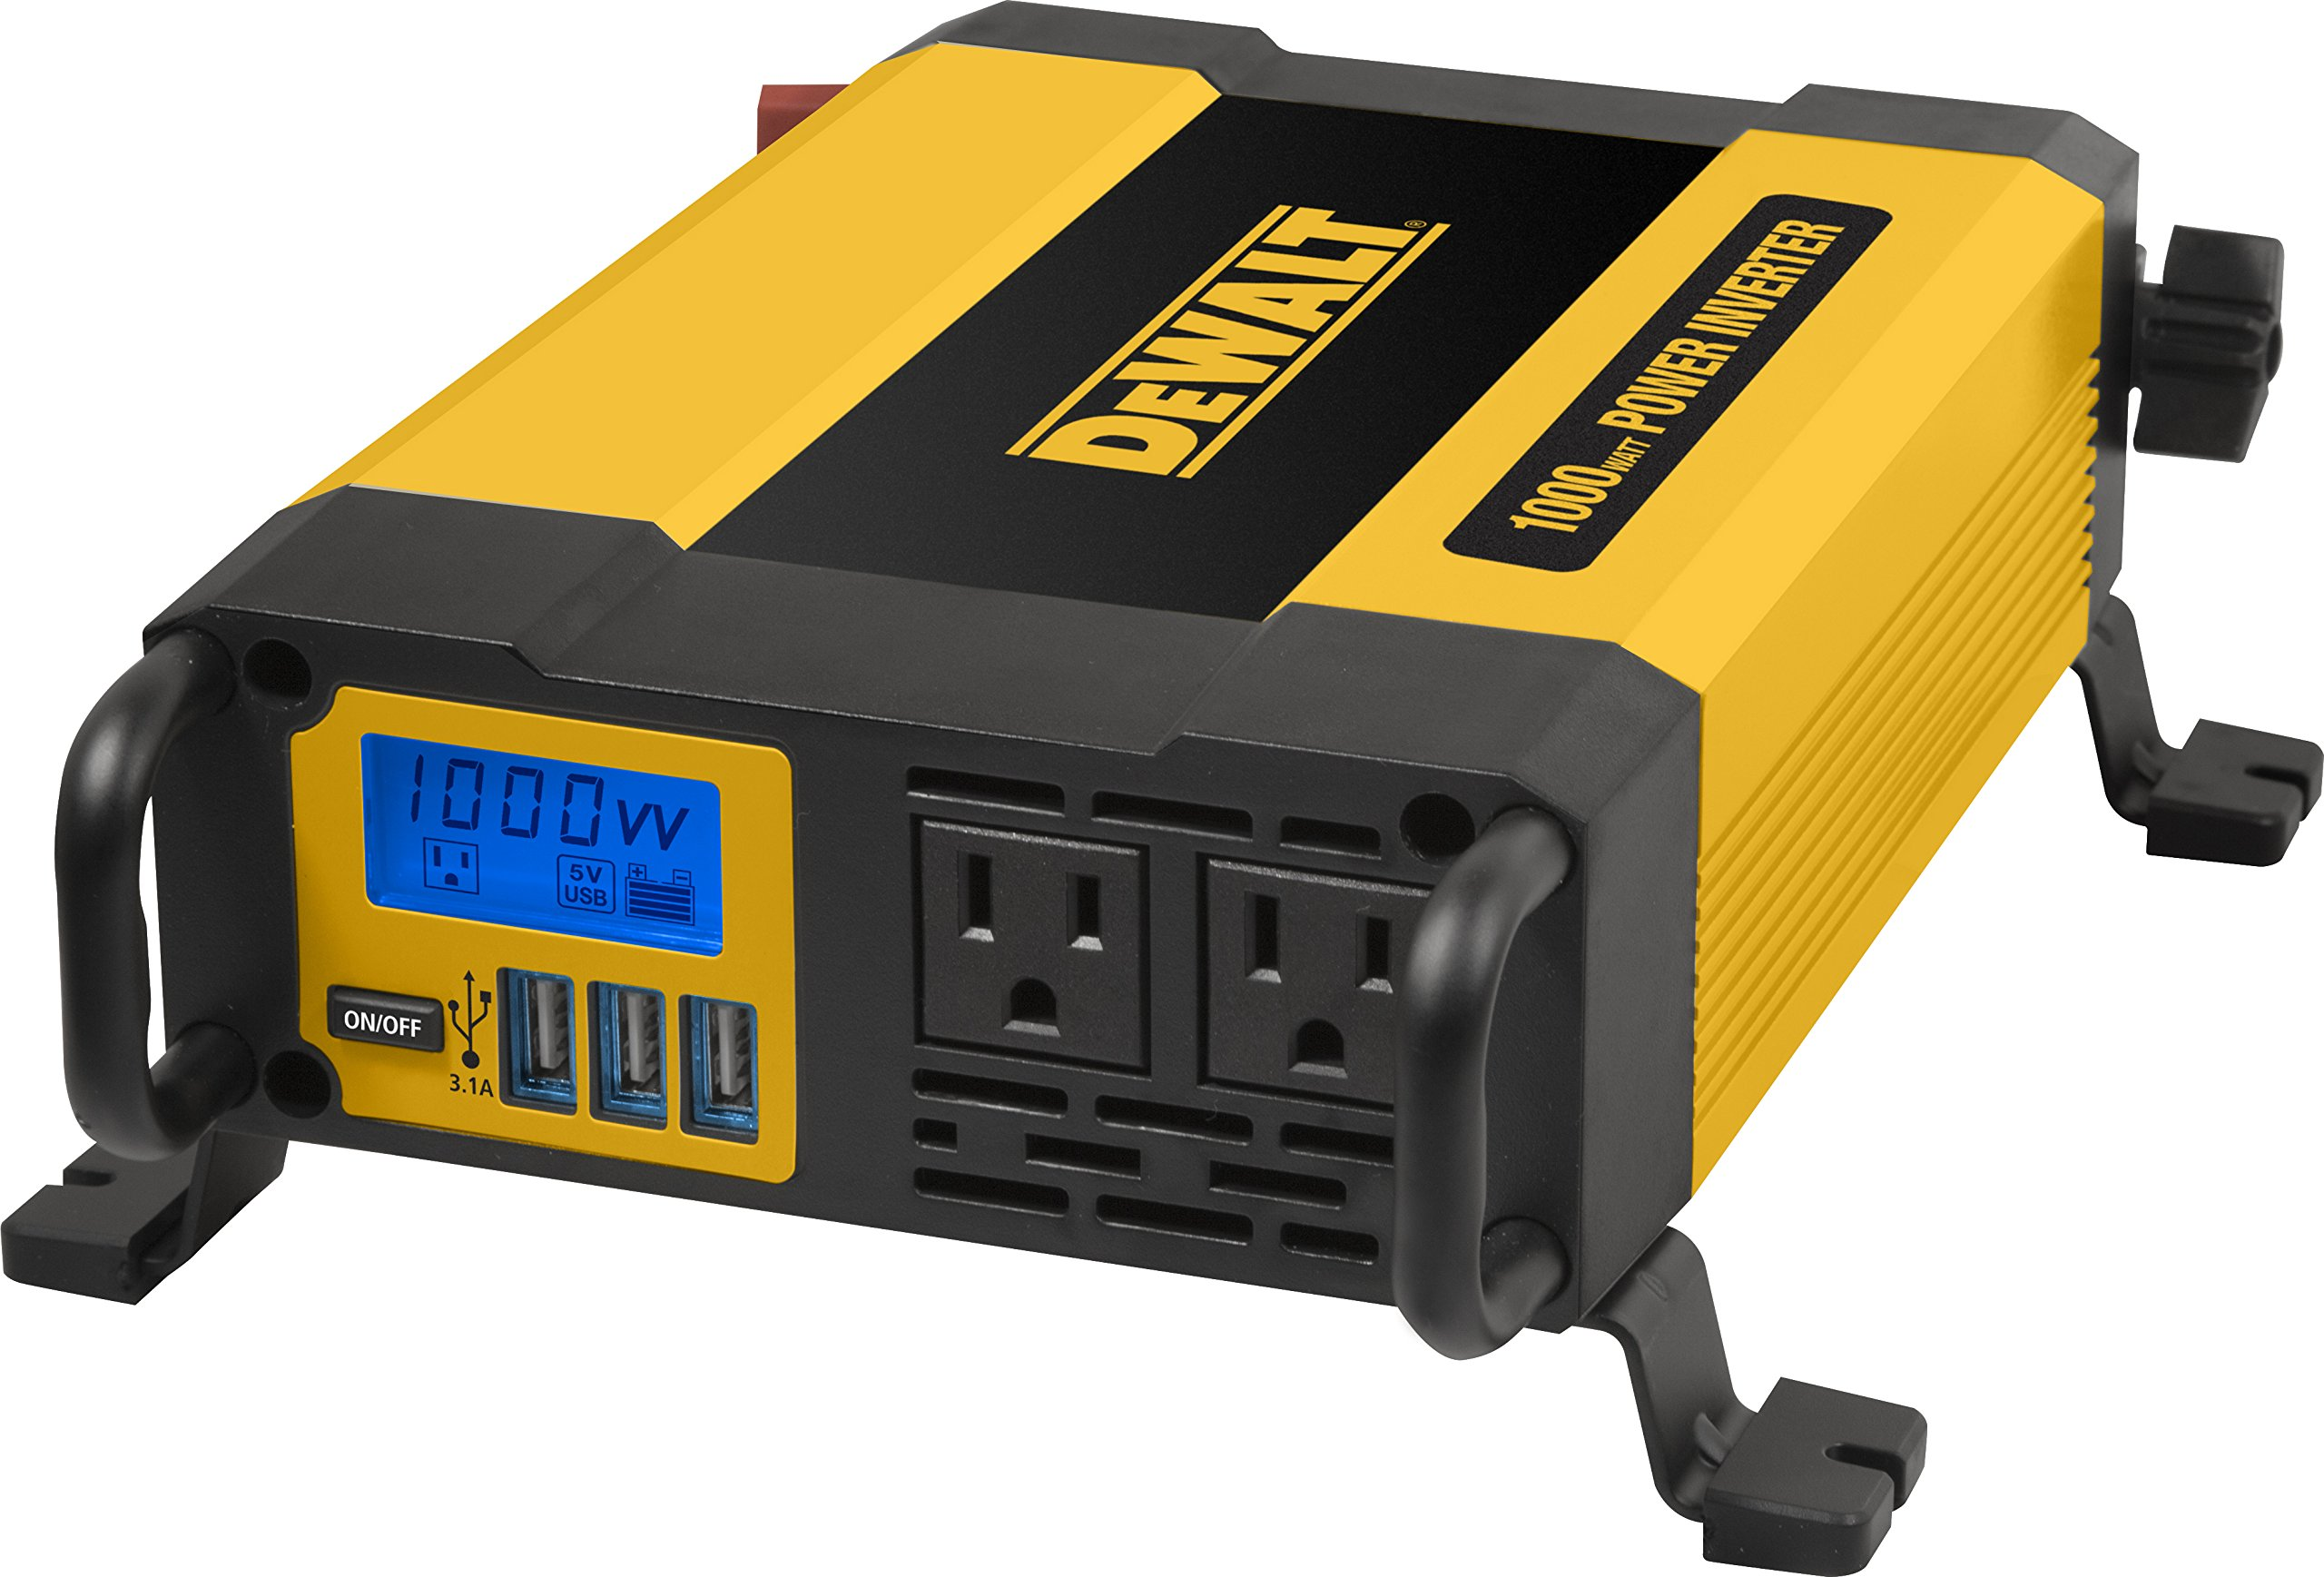 DEWALT DXAEPI1000 Power Inverter With LCD Display: